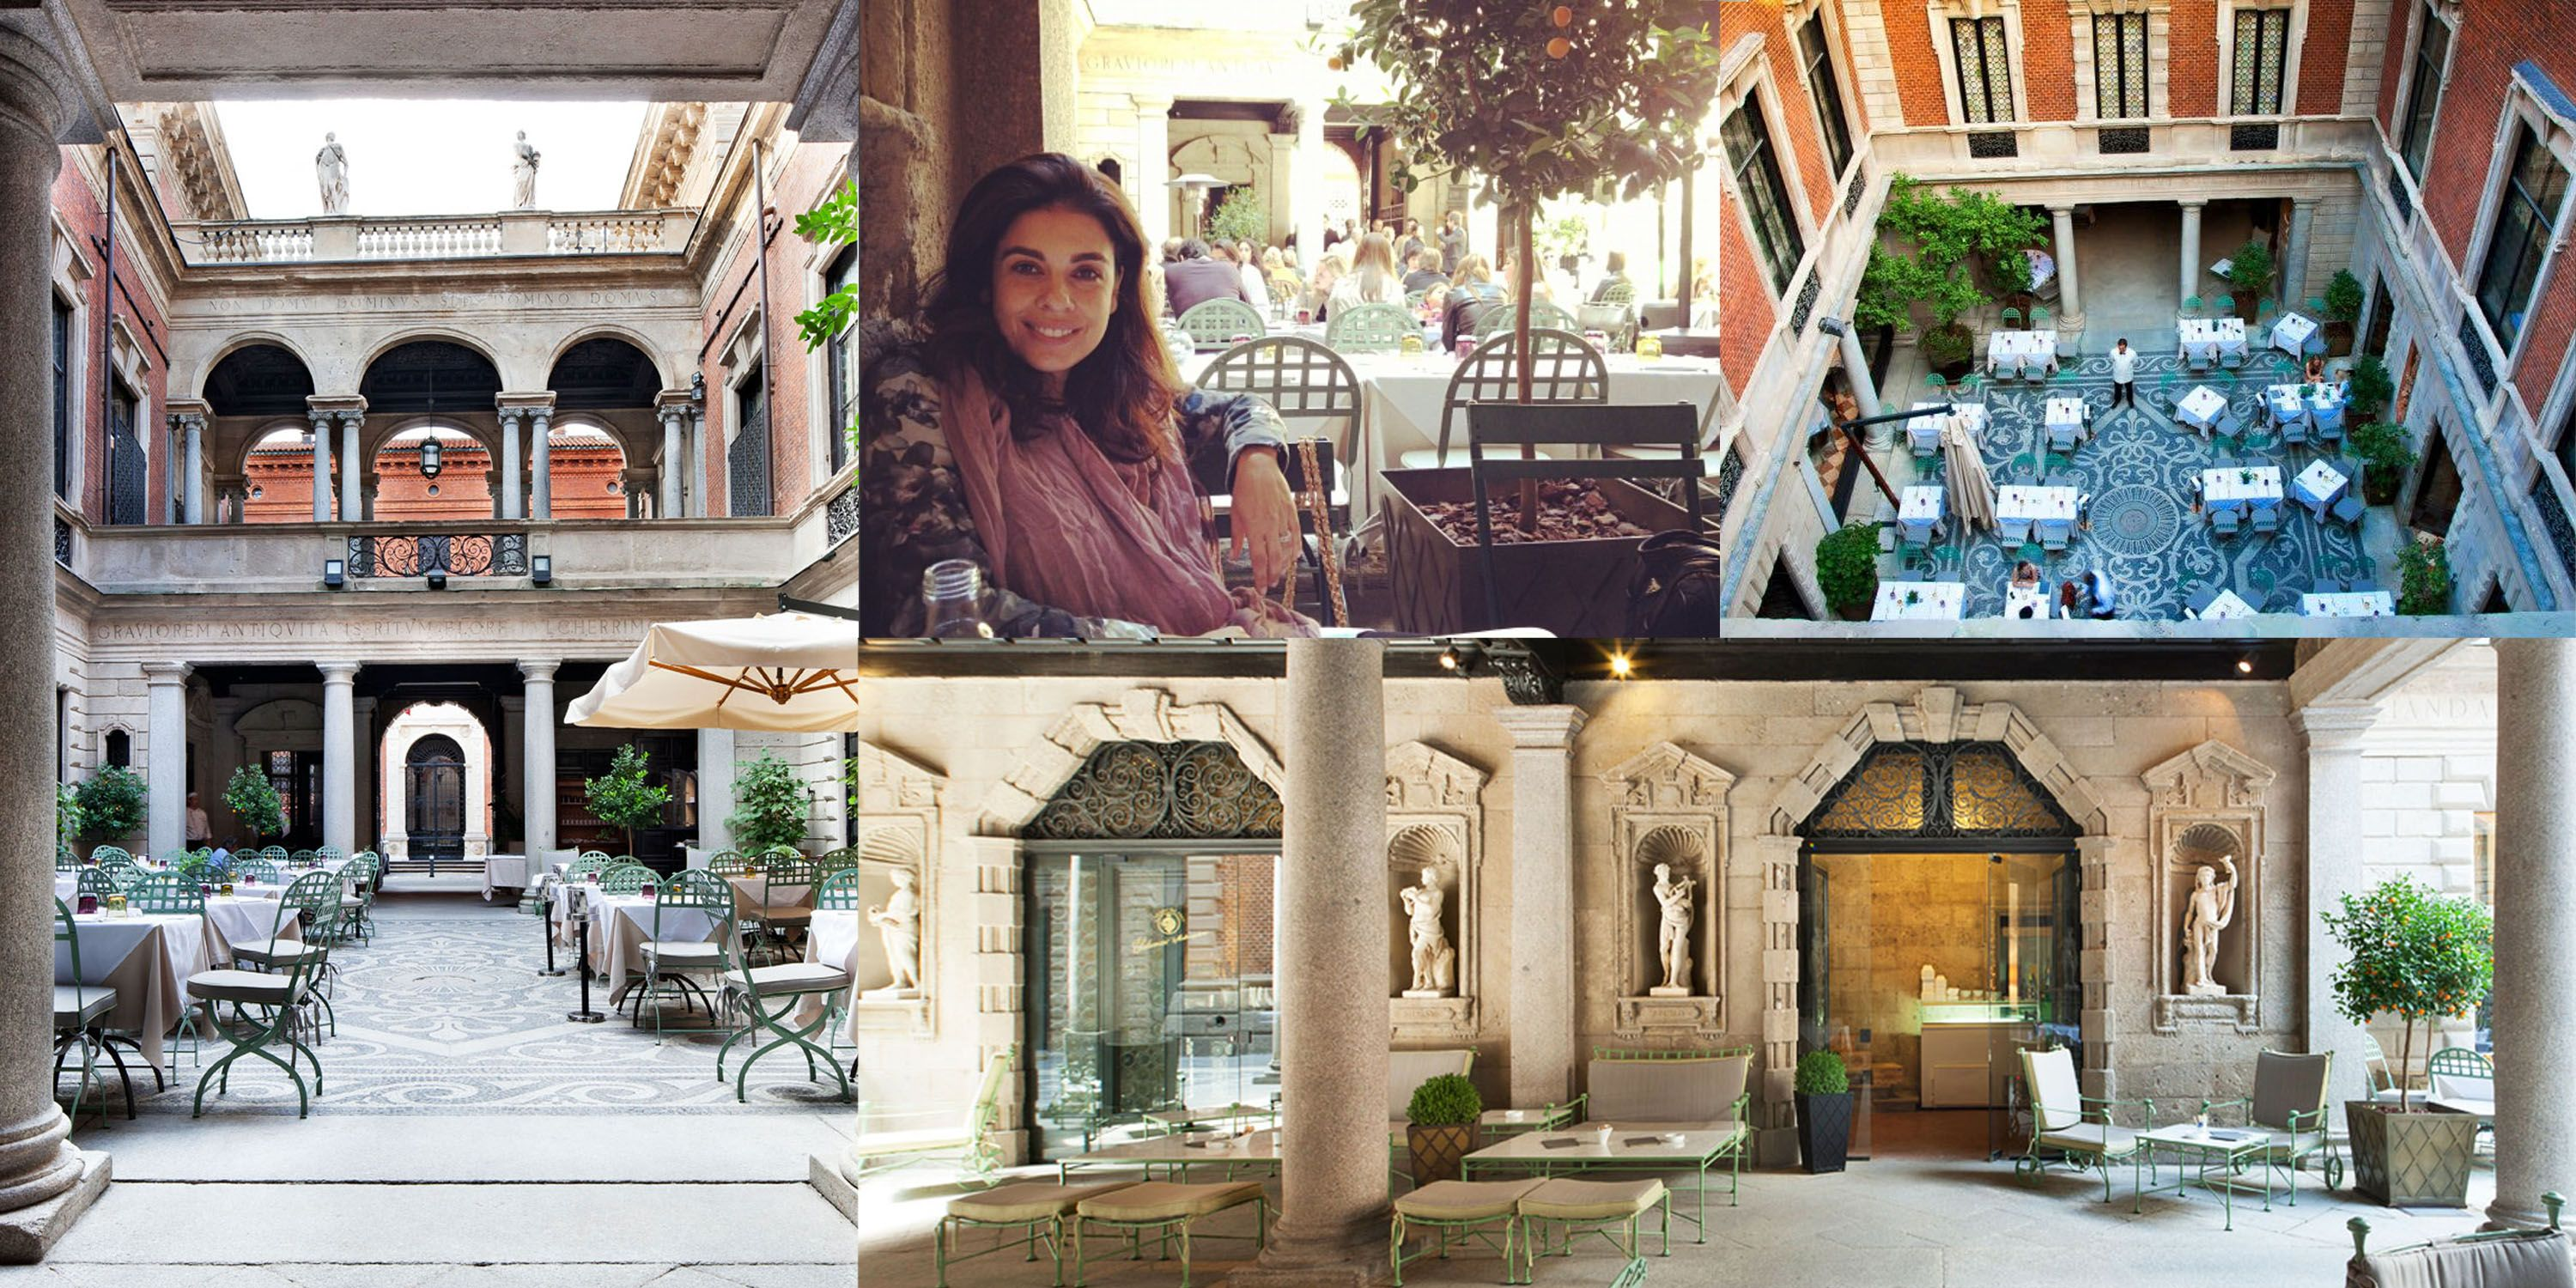 "<p>""I love the courtyard at <a href=""http://www.ilsalumaiodimontenapoleone.it/"" target=""_blank"">Salumaio di Montenapoleone</a> for a Fall lunch. It feels like you're dining at a palace right in the center of town.""</p>"